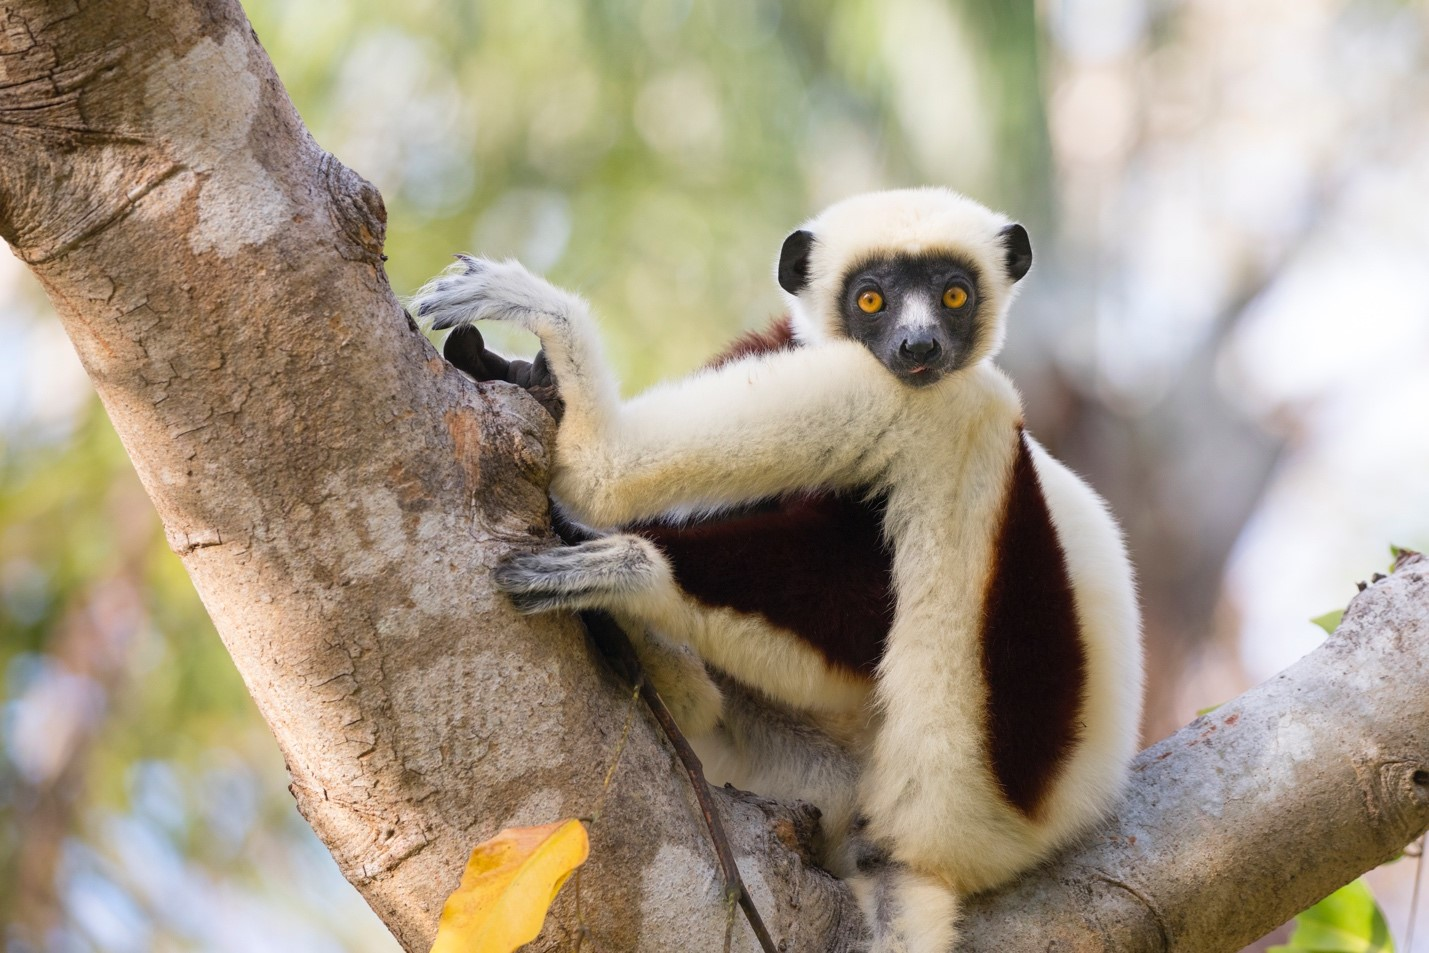 a coquerel's sifaka poses perfectly in a tree in anjajavy